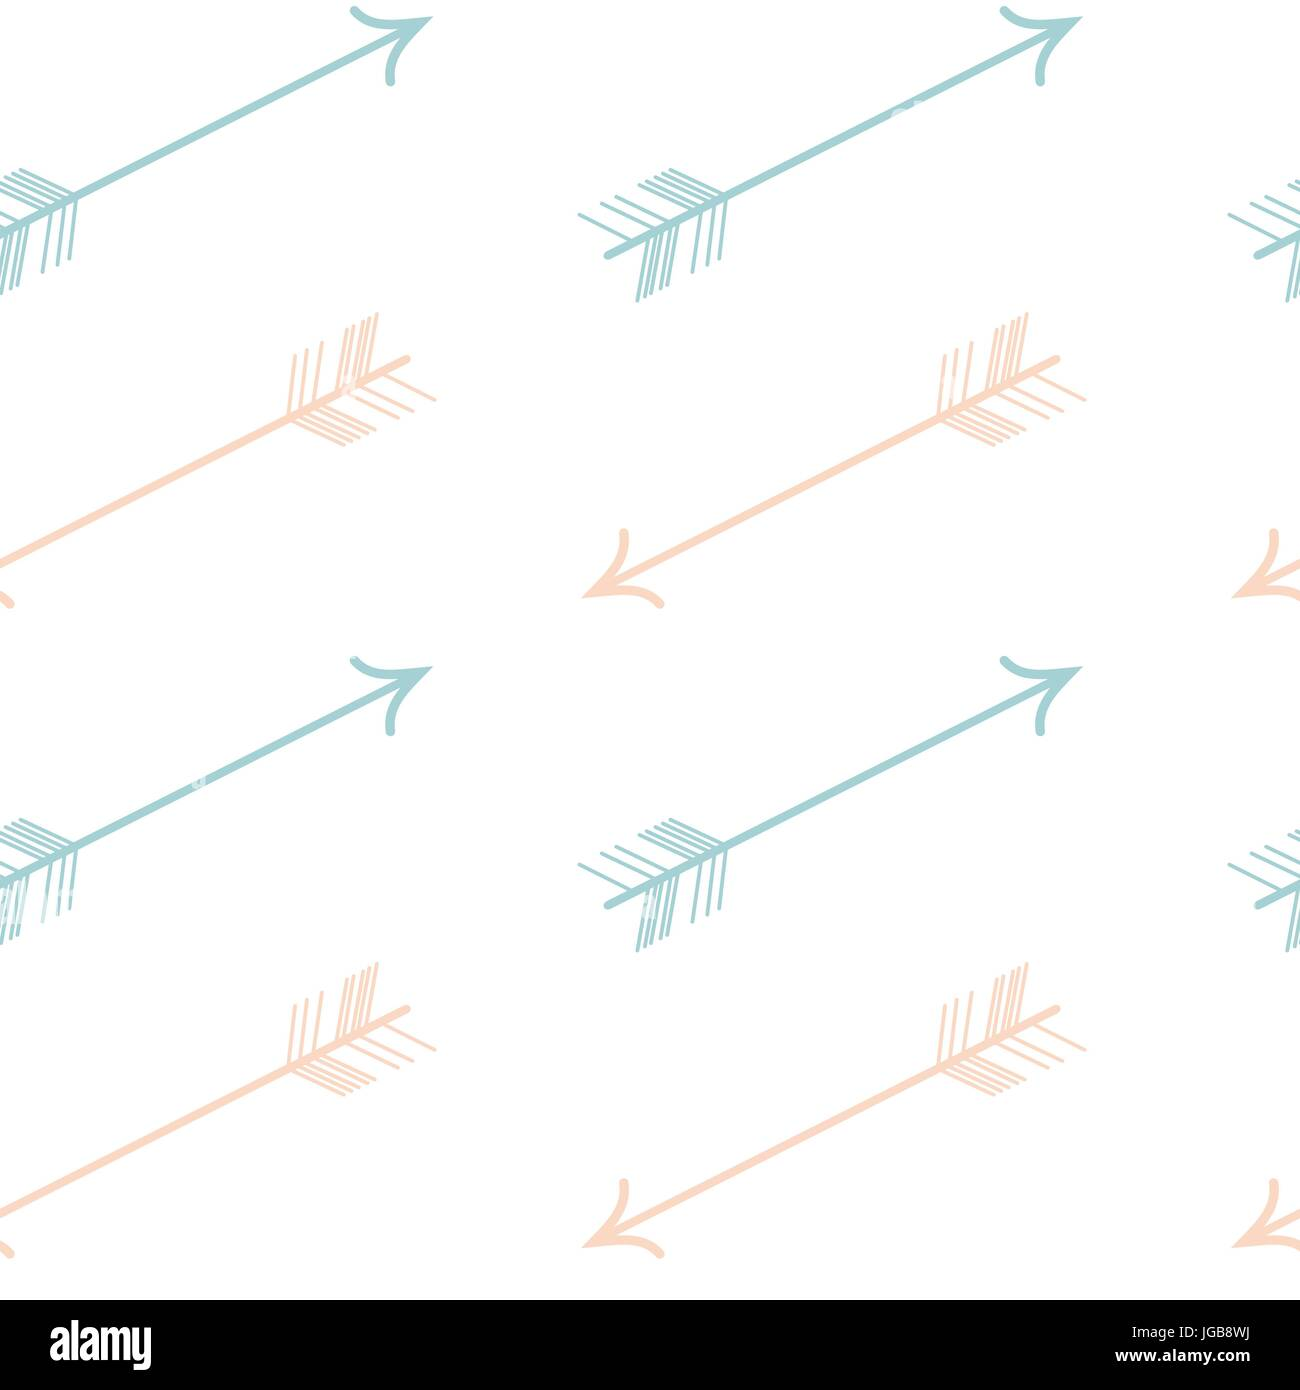 Cute Pastel Color Pink Blue Arrows Seamless Vector Pattern